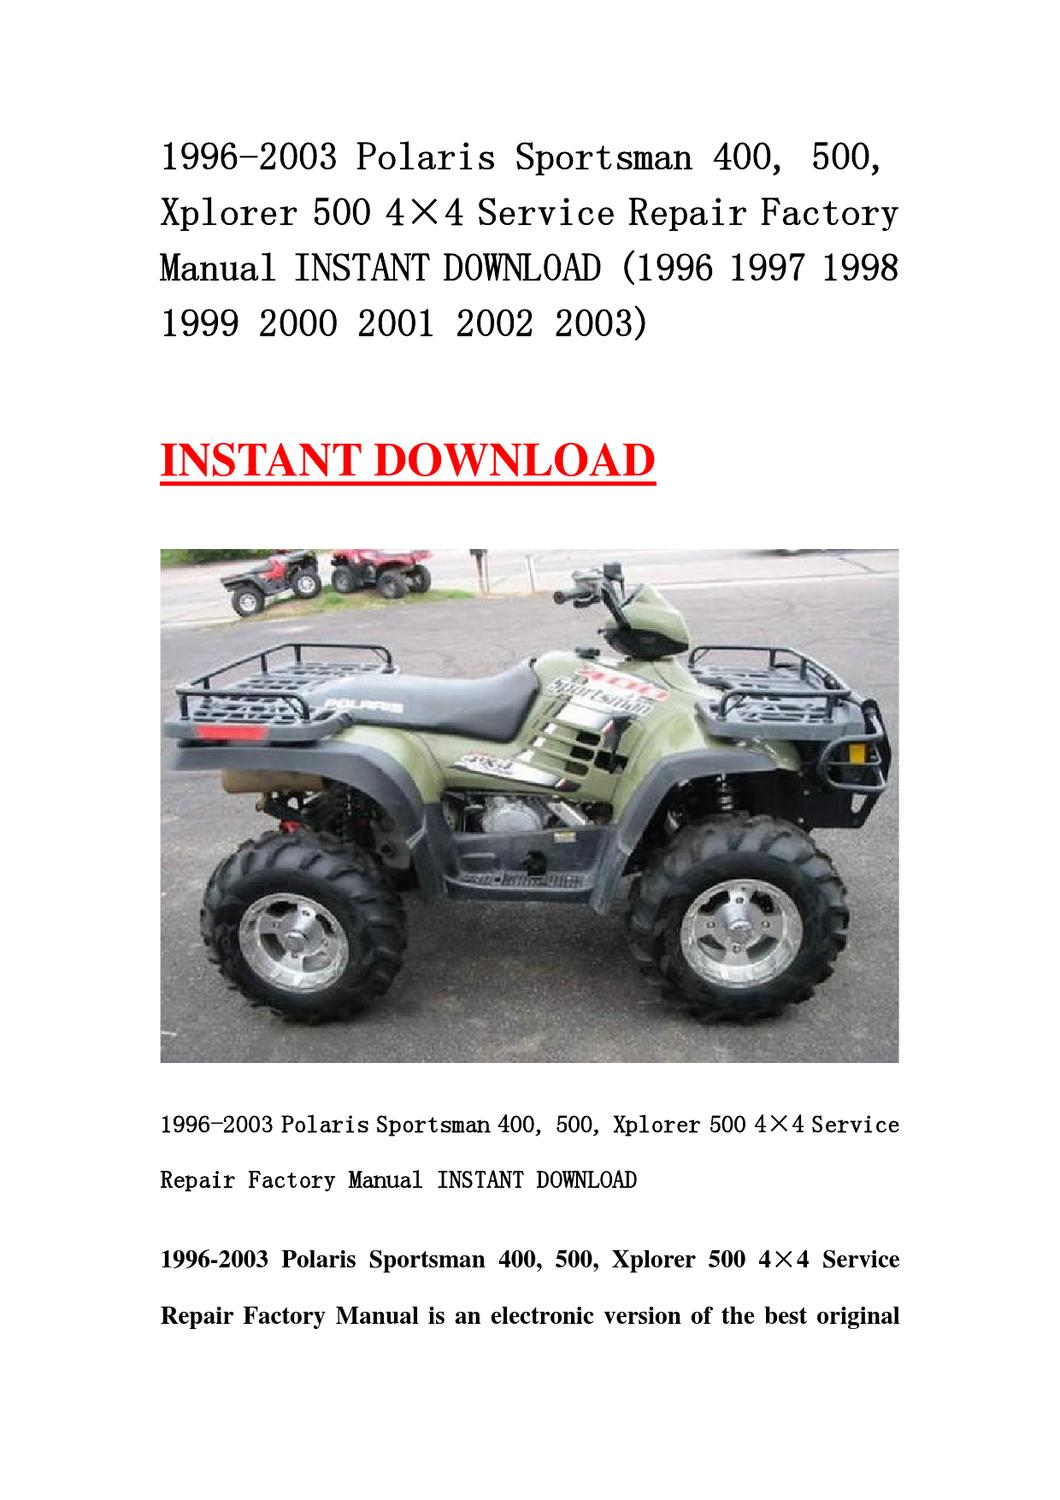 1998 Polaris Scrambler 500 Parts Manual Ebook